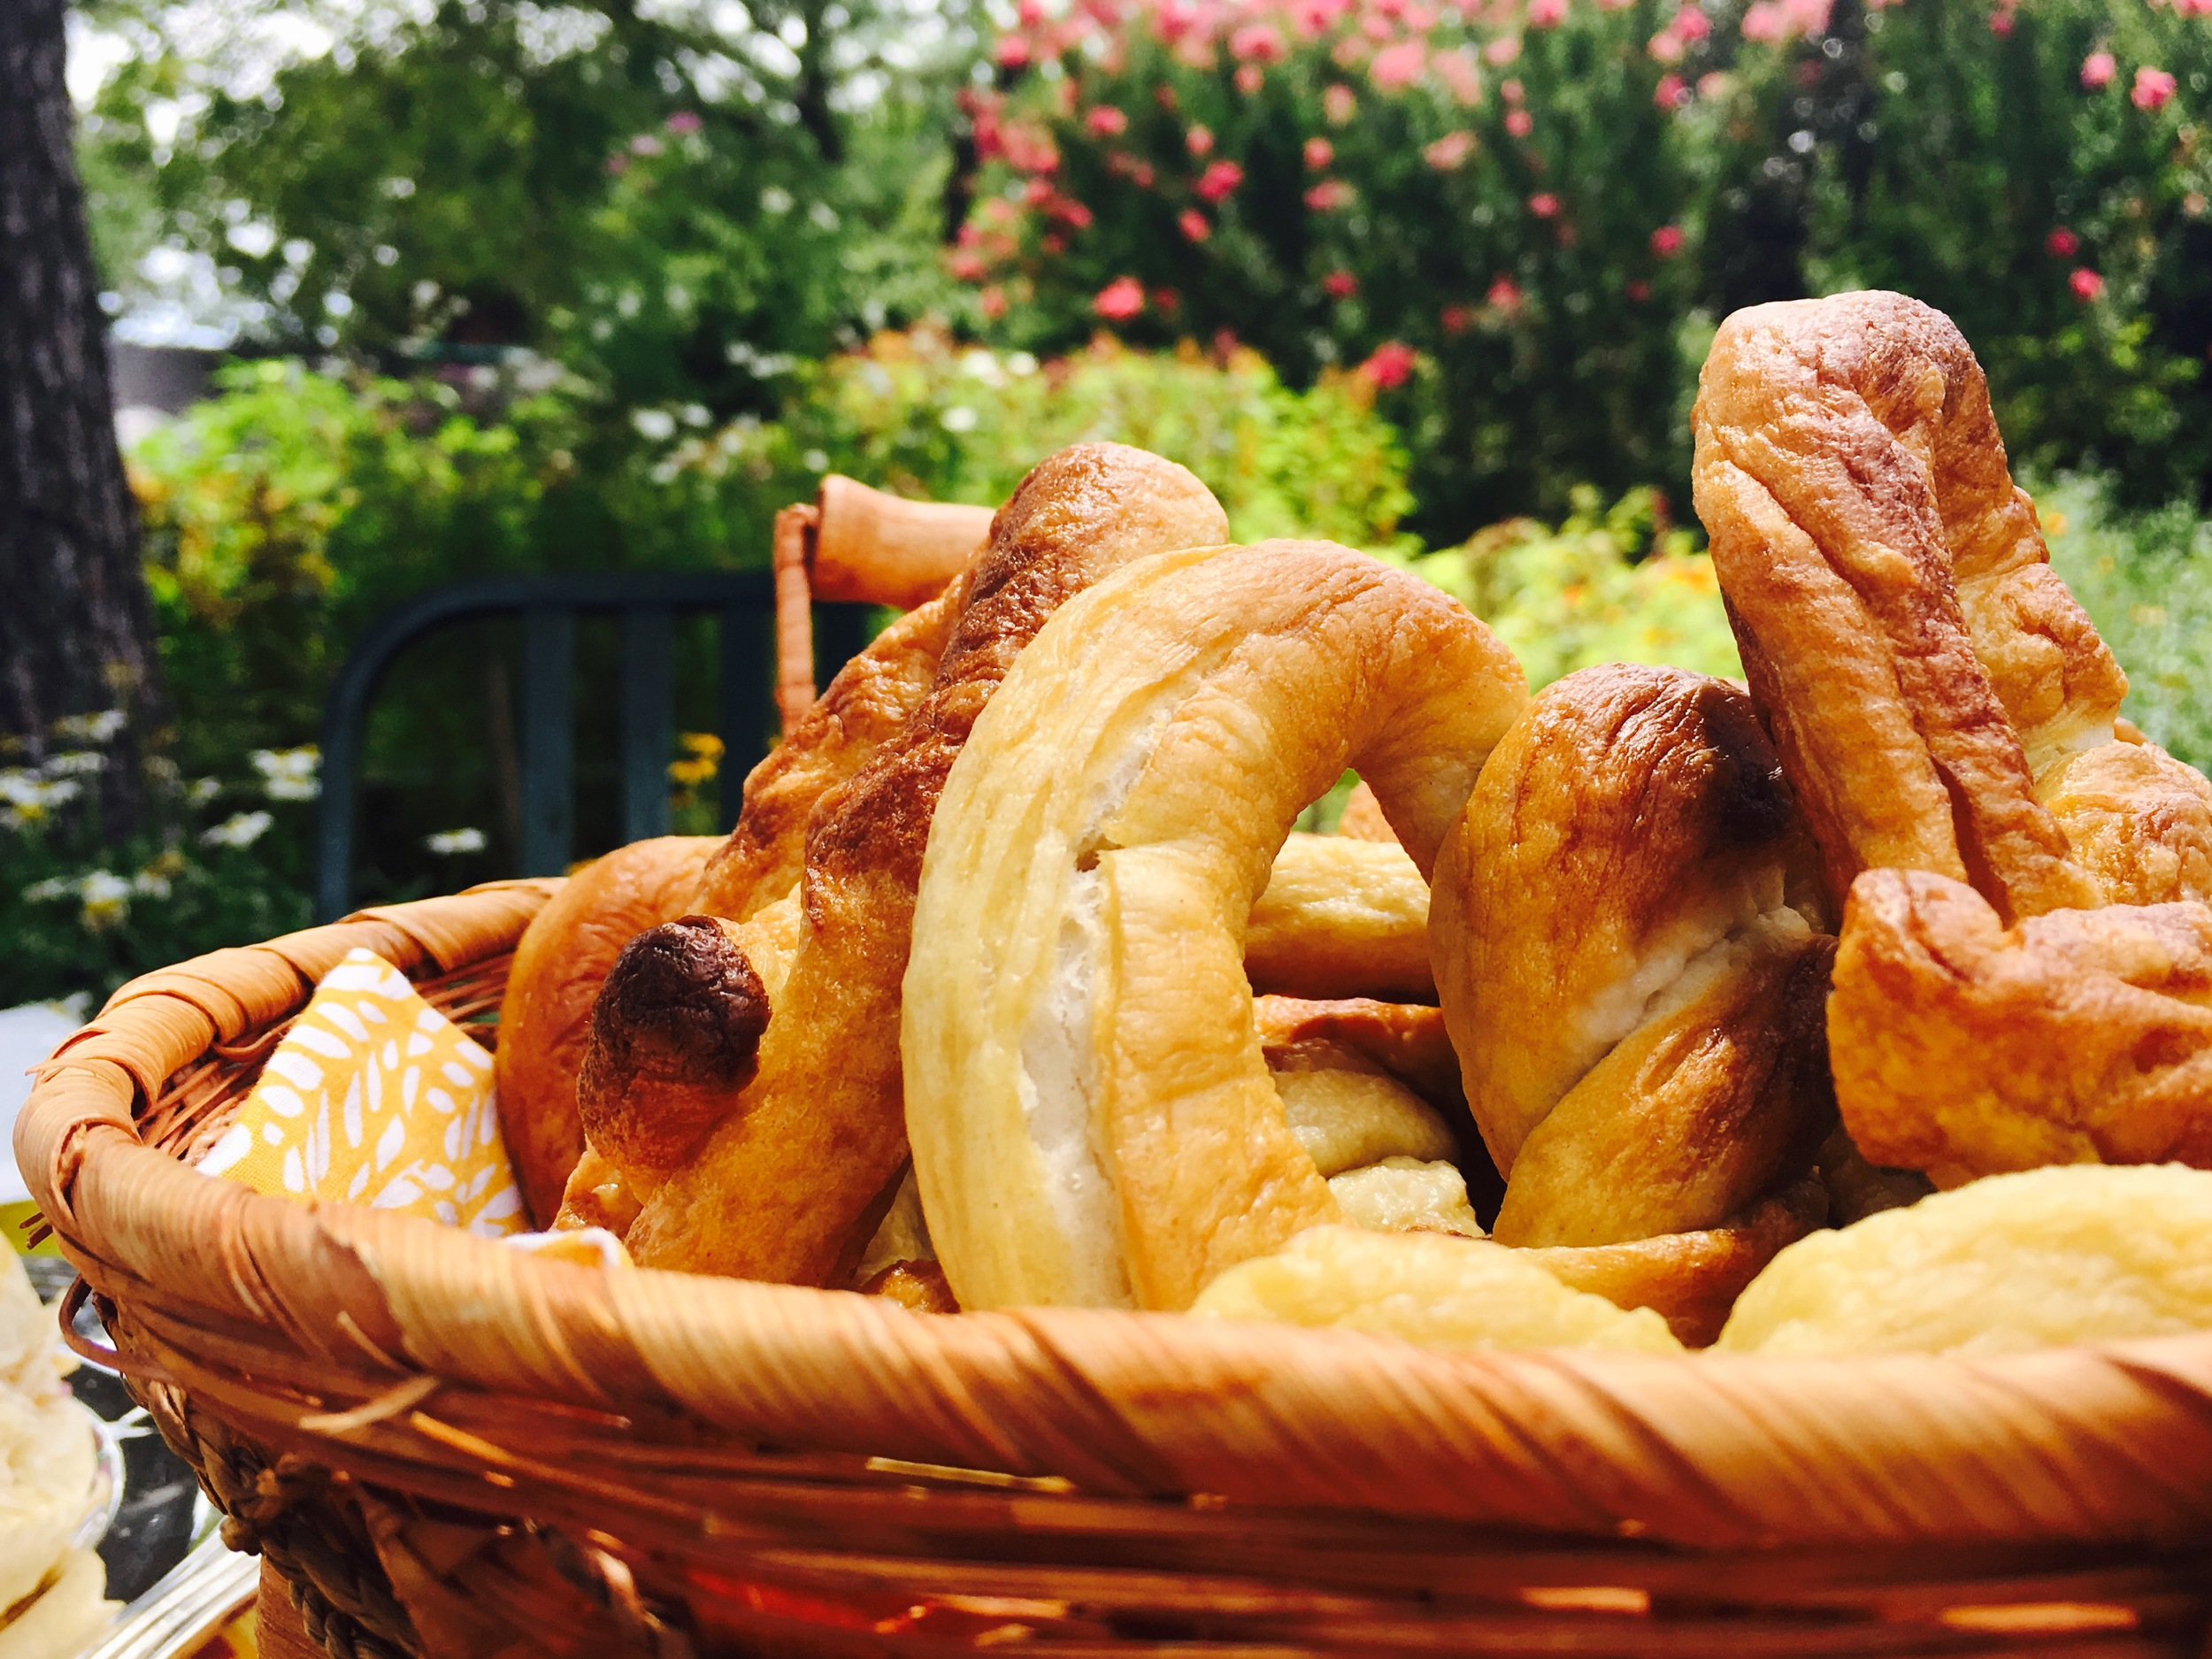 A Basket of Home cooked pretzels